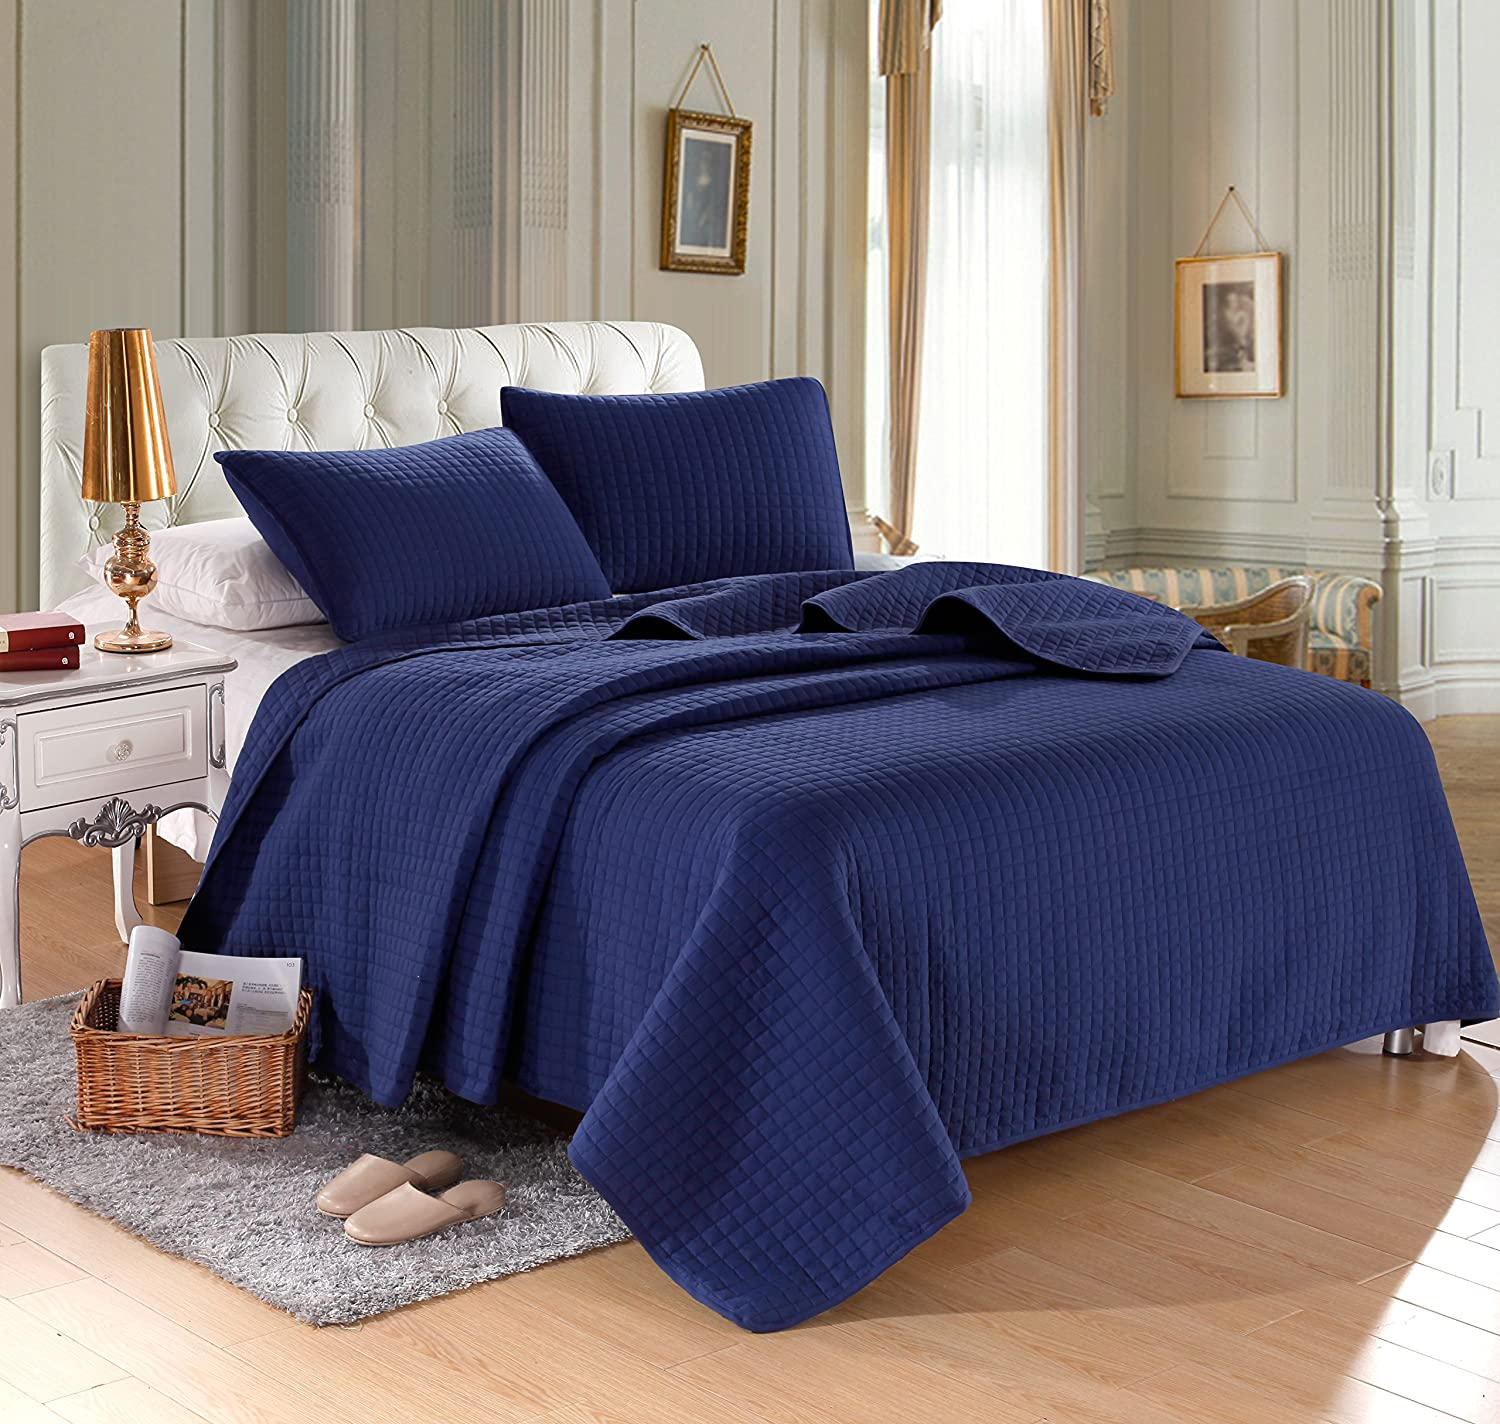 (King (96x102), Blue) KING NAVYBLUE Solid colour Quilted Bedspread Coverlet(96